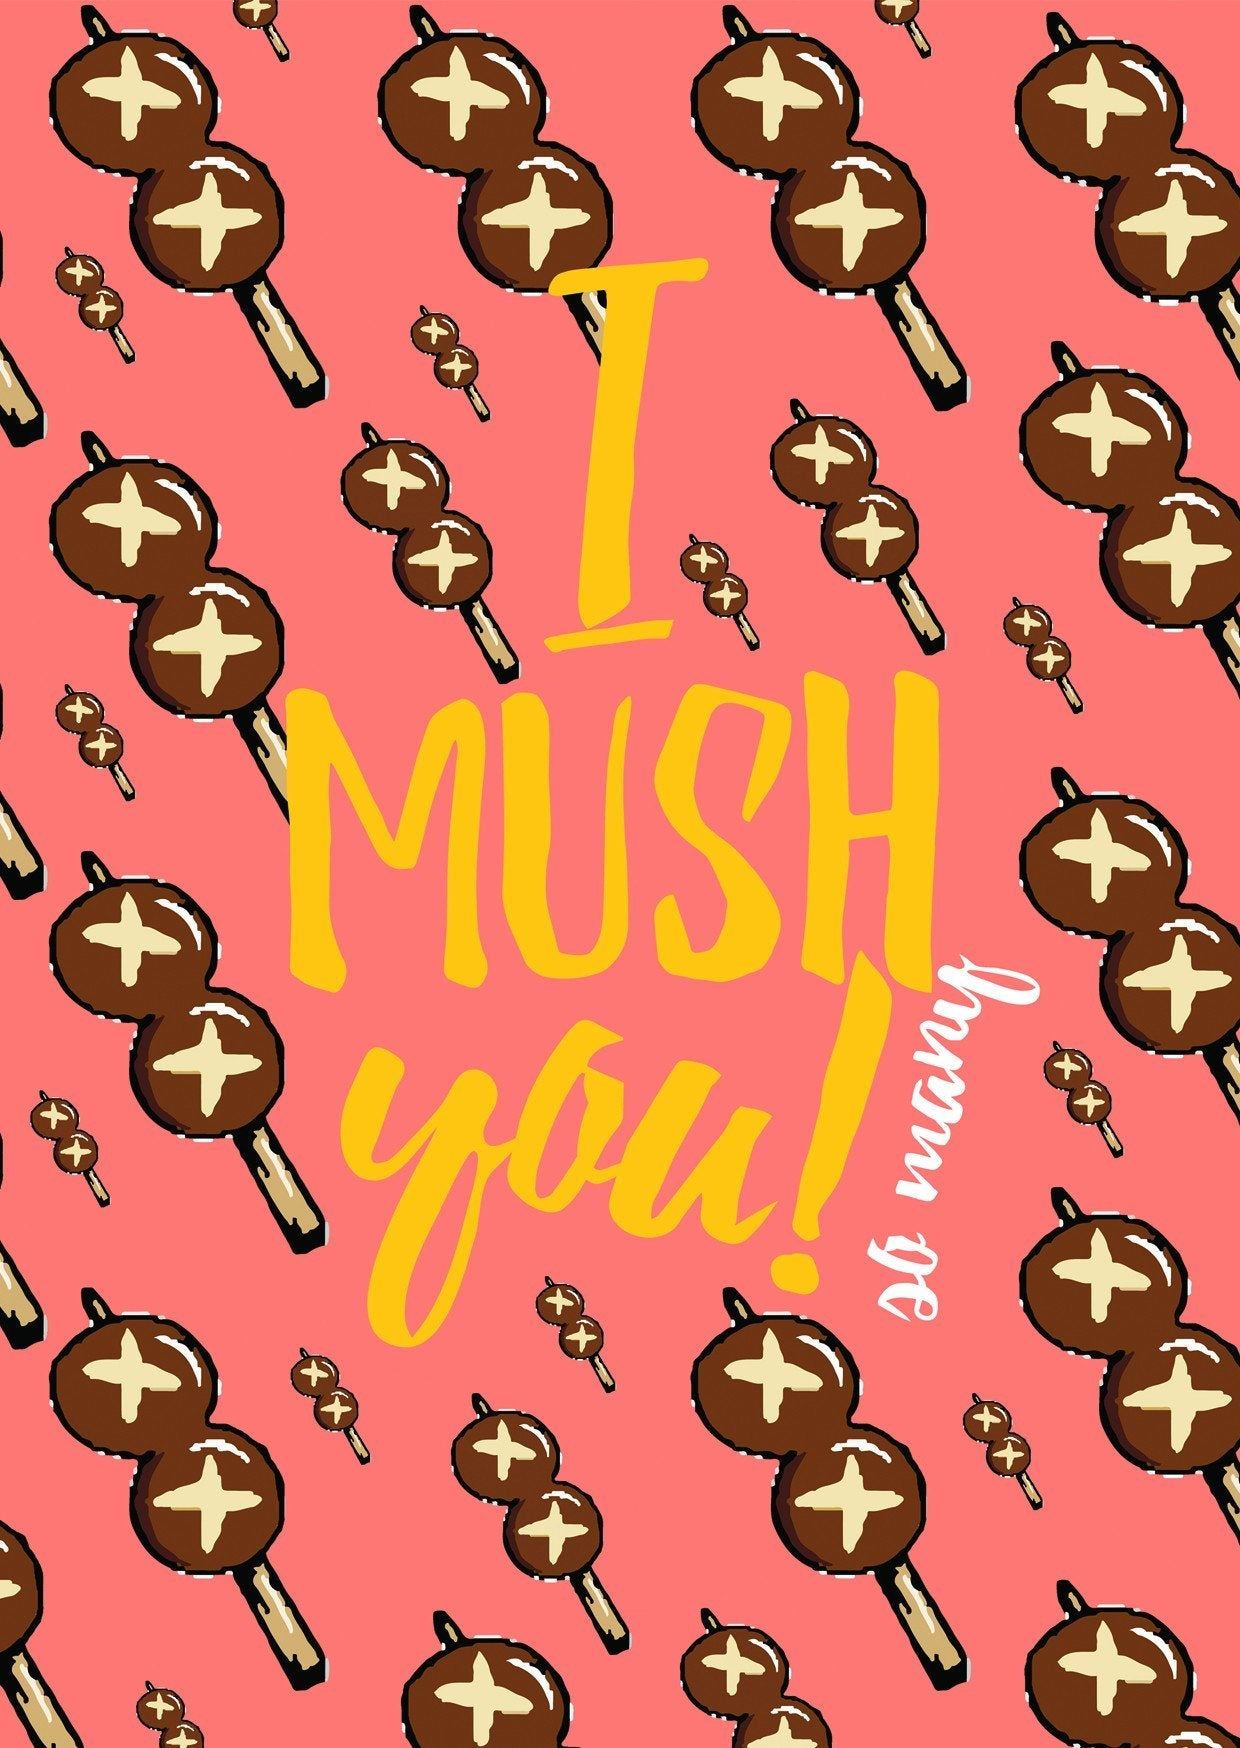 I Mush You Greeting Card - Postcards - The Paper Happiness - Naiise